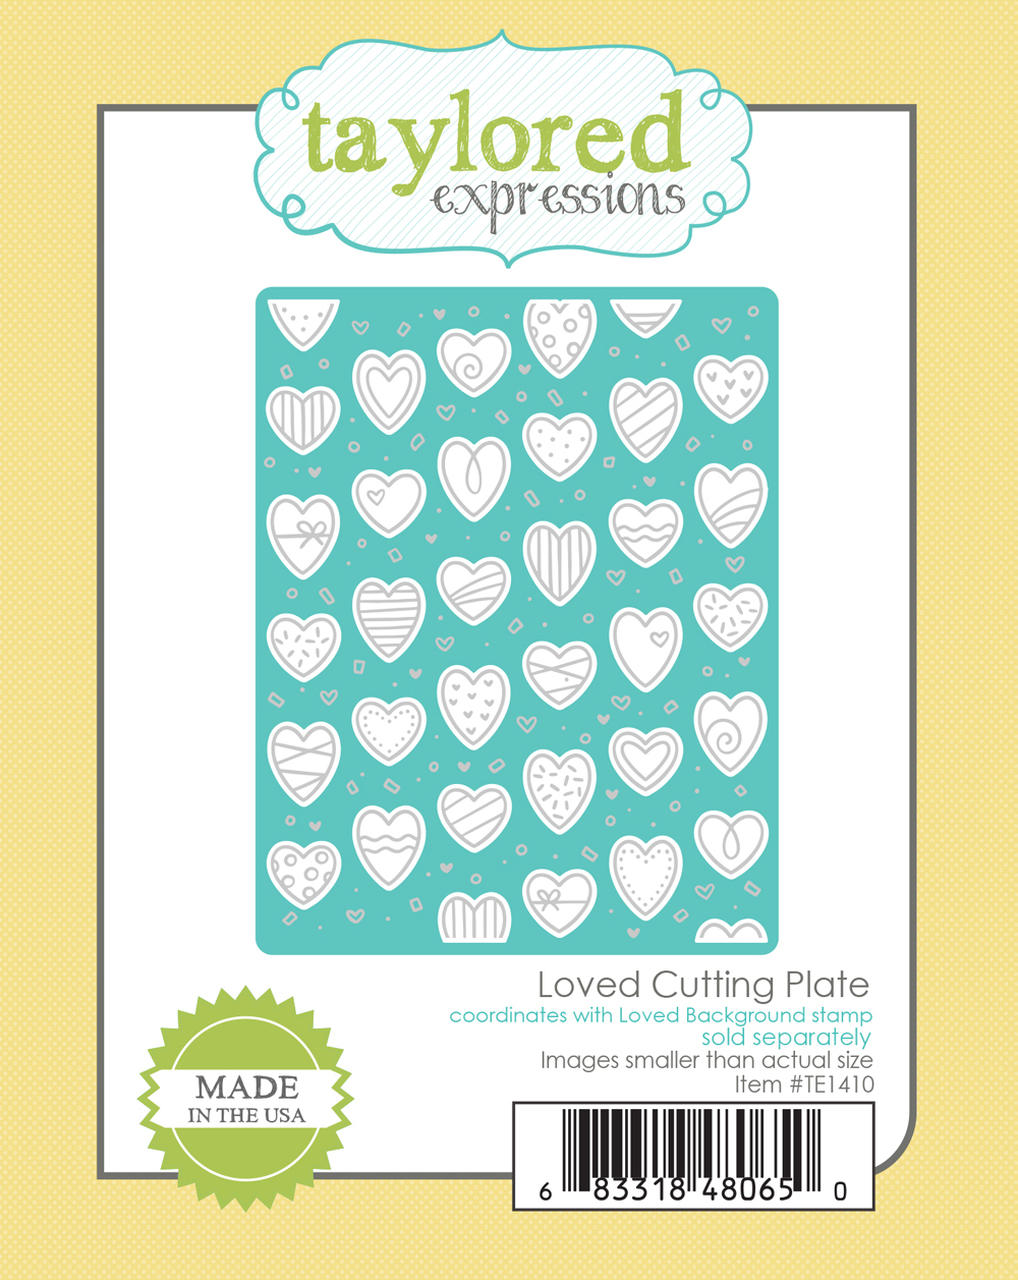 *NEW* - Taylored Expression - Loved Cutting Plate DUE IN FEBRUARY